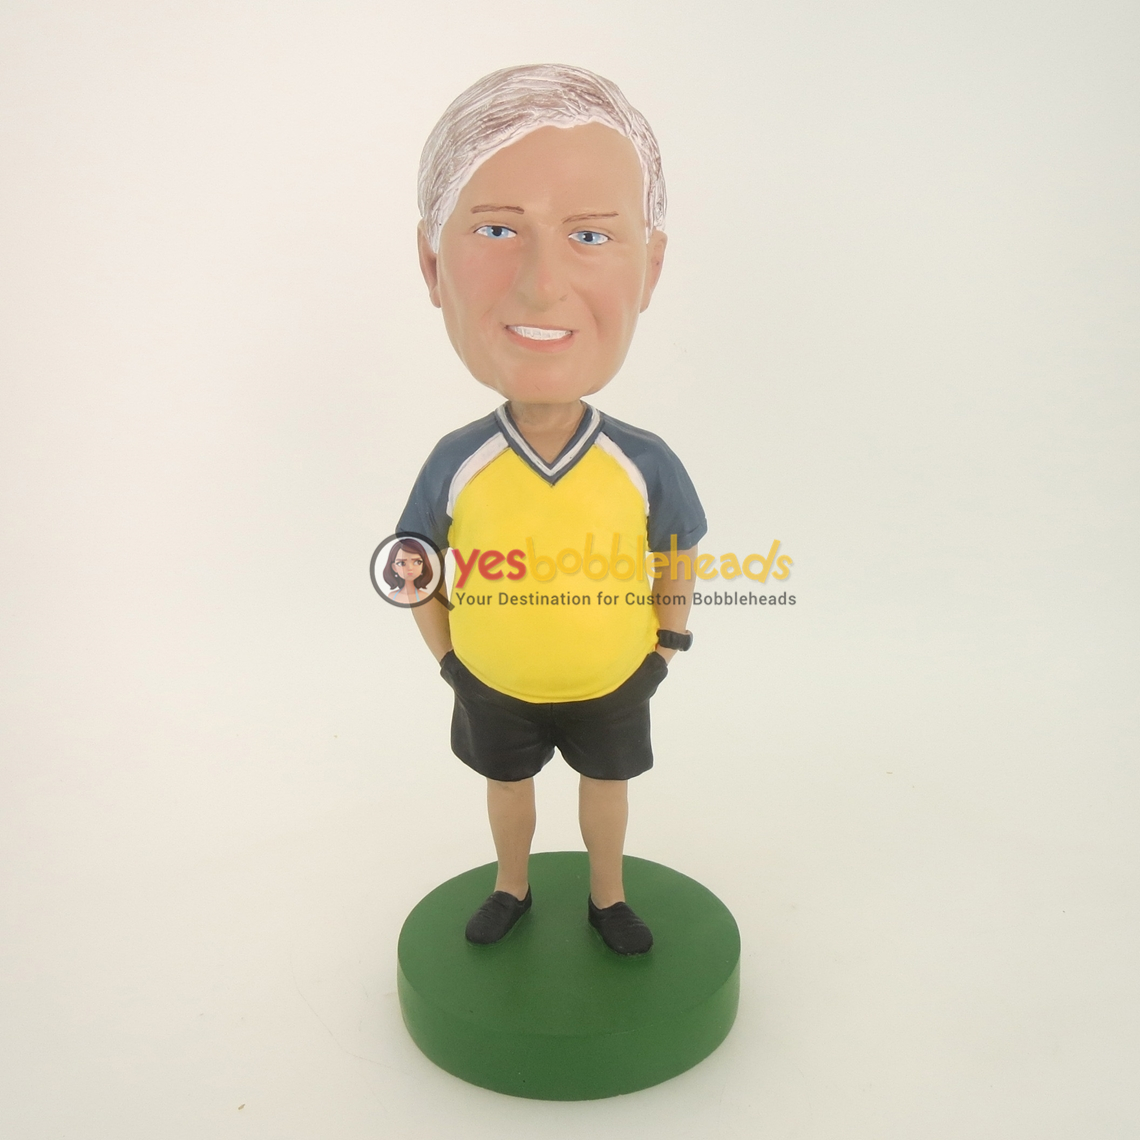 Picture of Custom Bobblehead Doll: Hands In Shorts Male